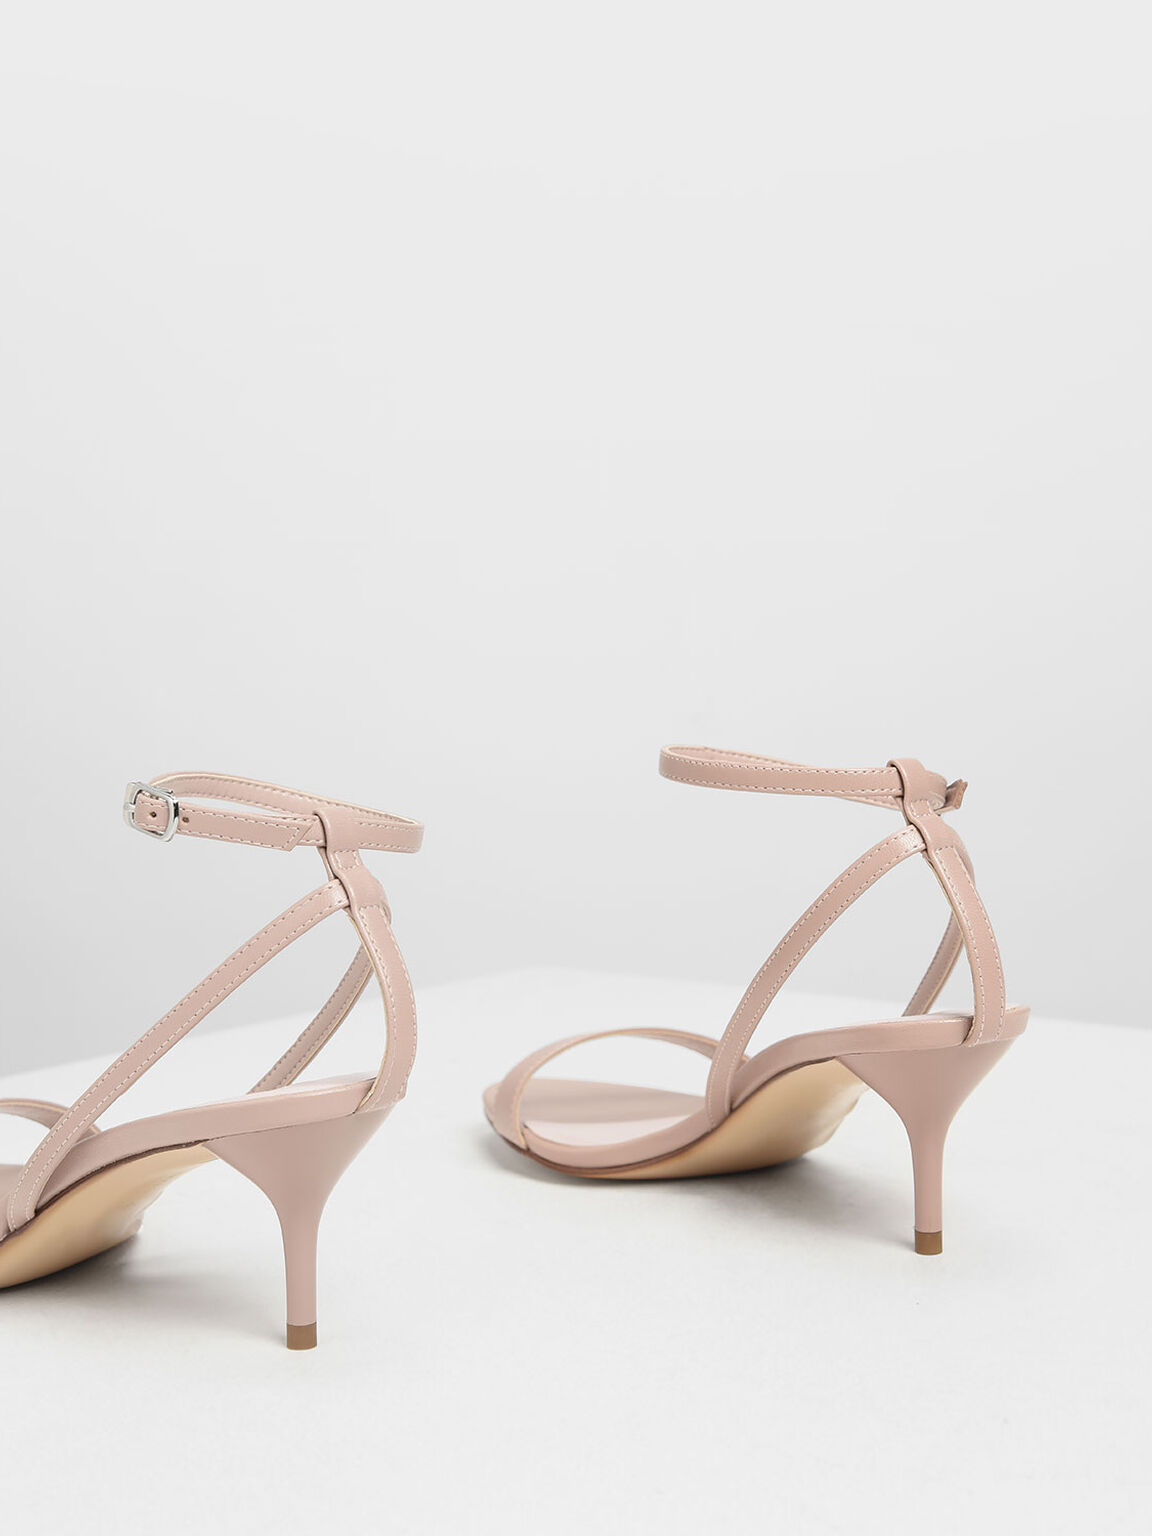 Classic Ankle Strap Sandals, Nude, hi-res